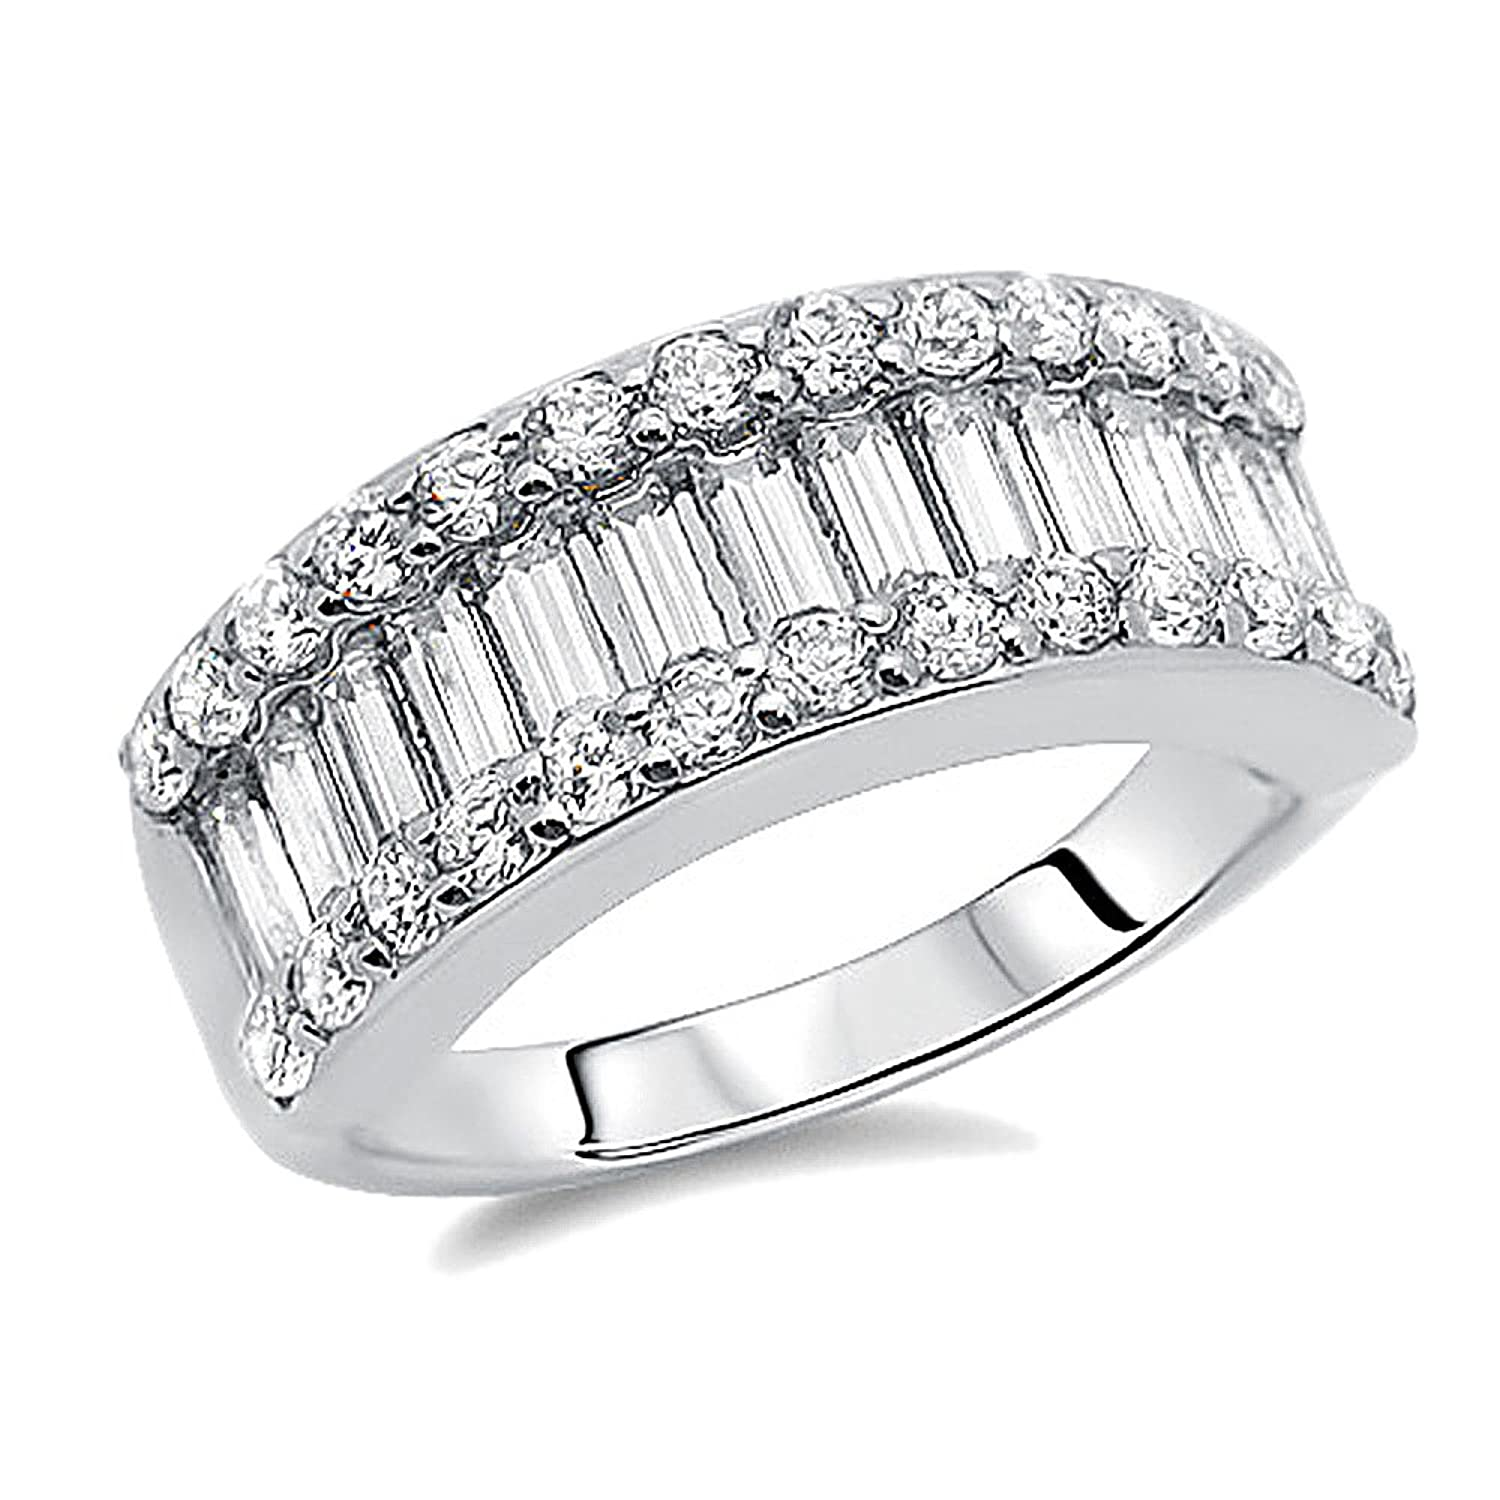 round of diamond size baguette ringprincess princess band and diamondernity eternity full platinum ring frightening design image ringplatinum ringbaguette bands